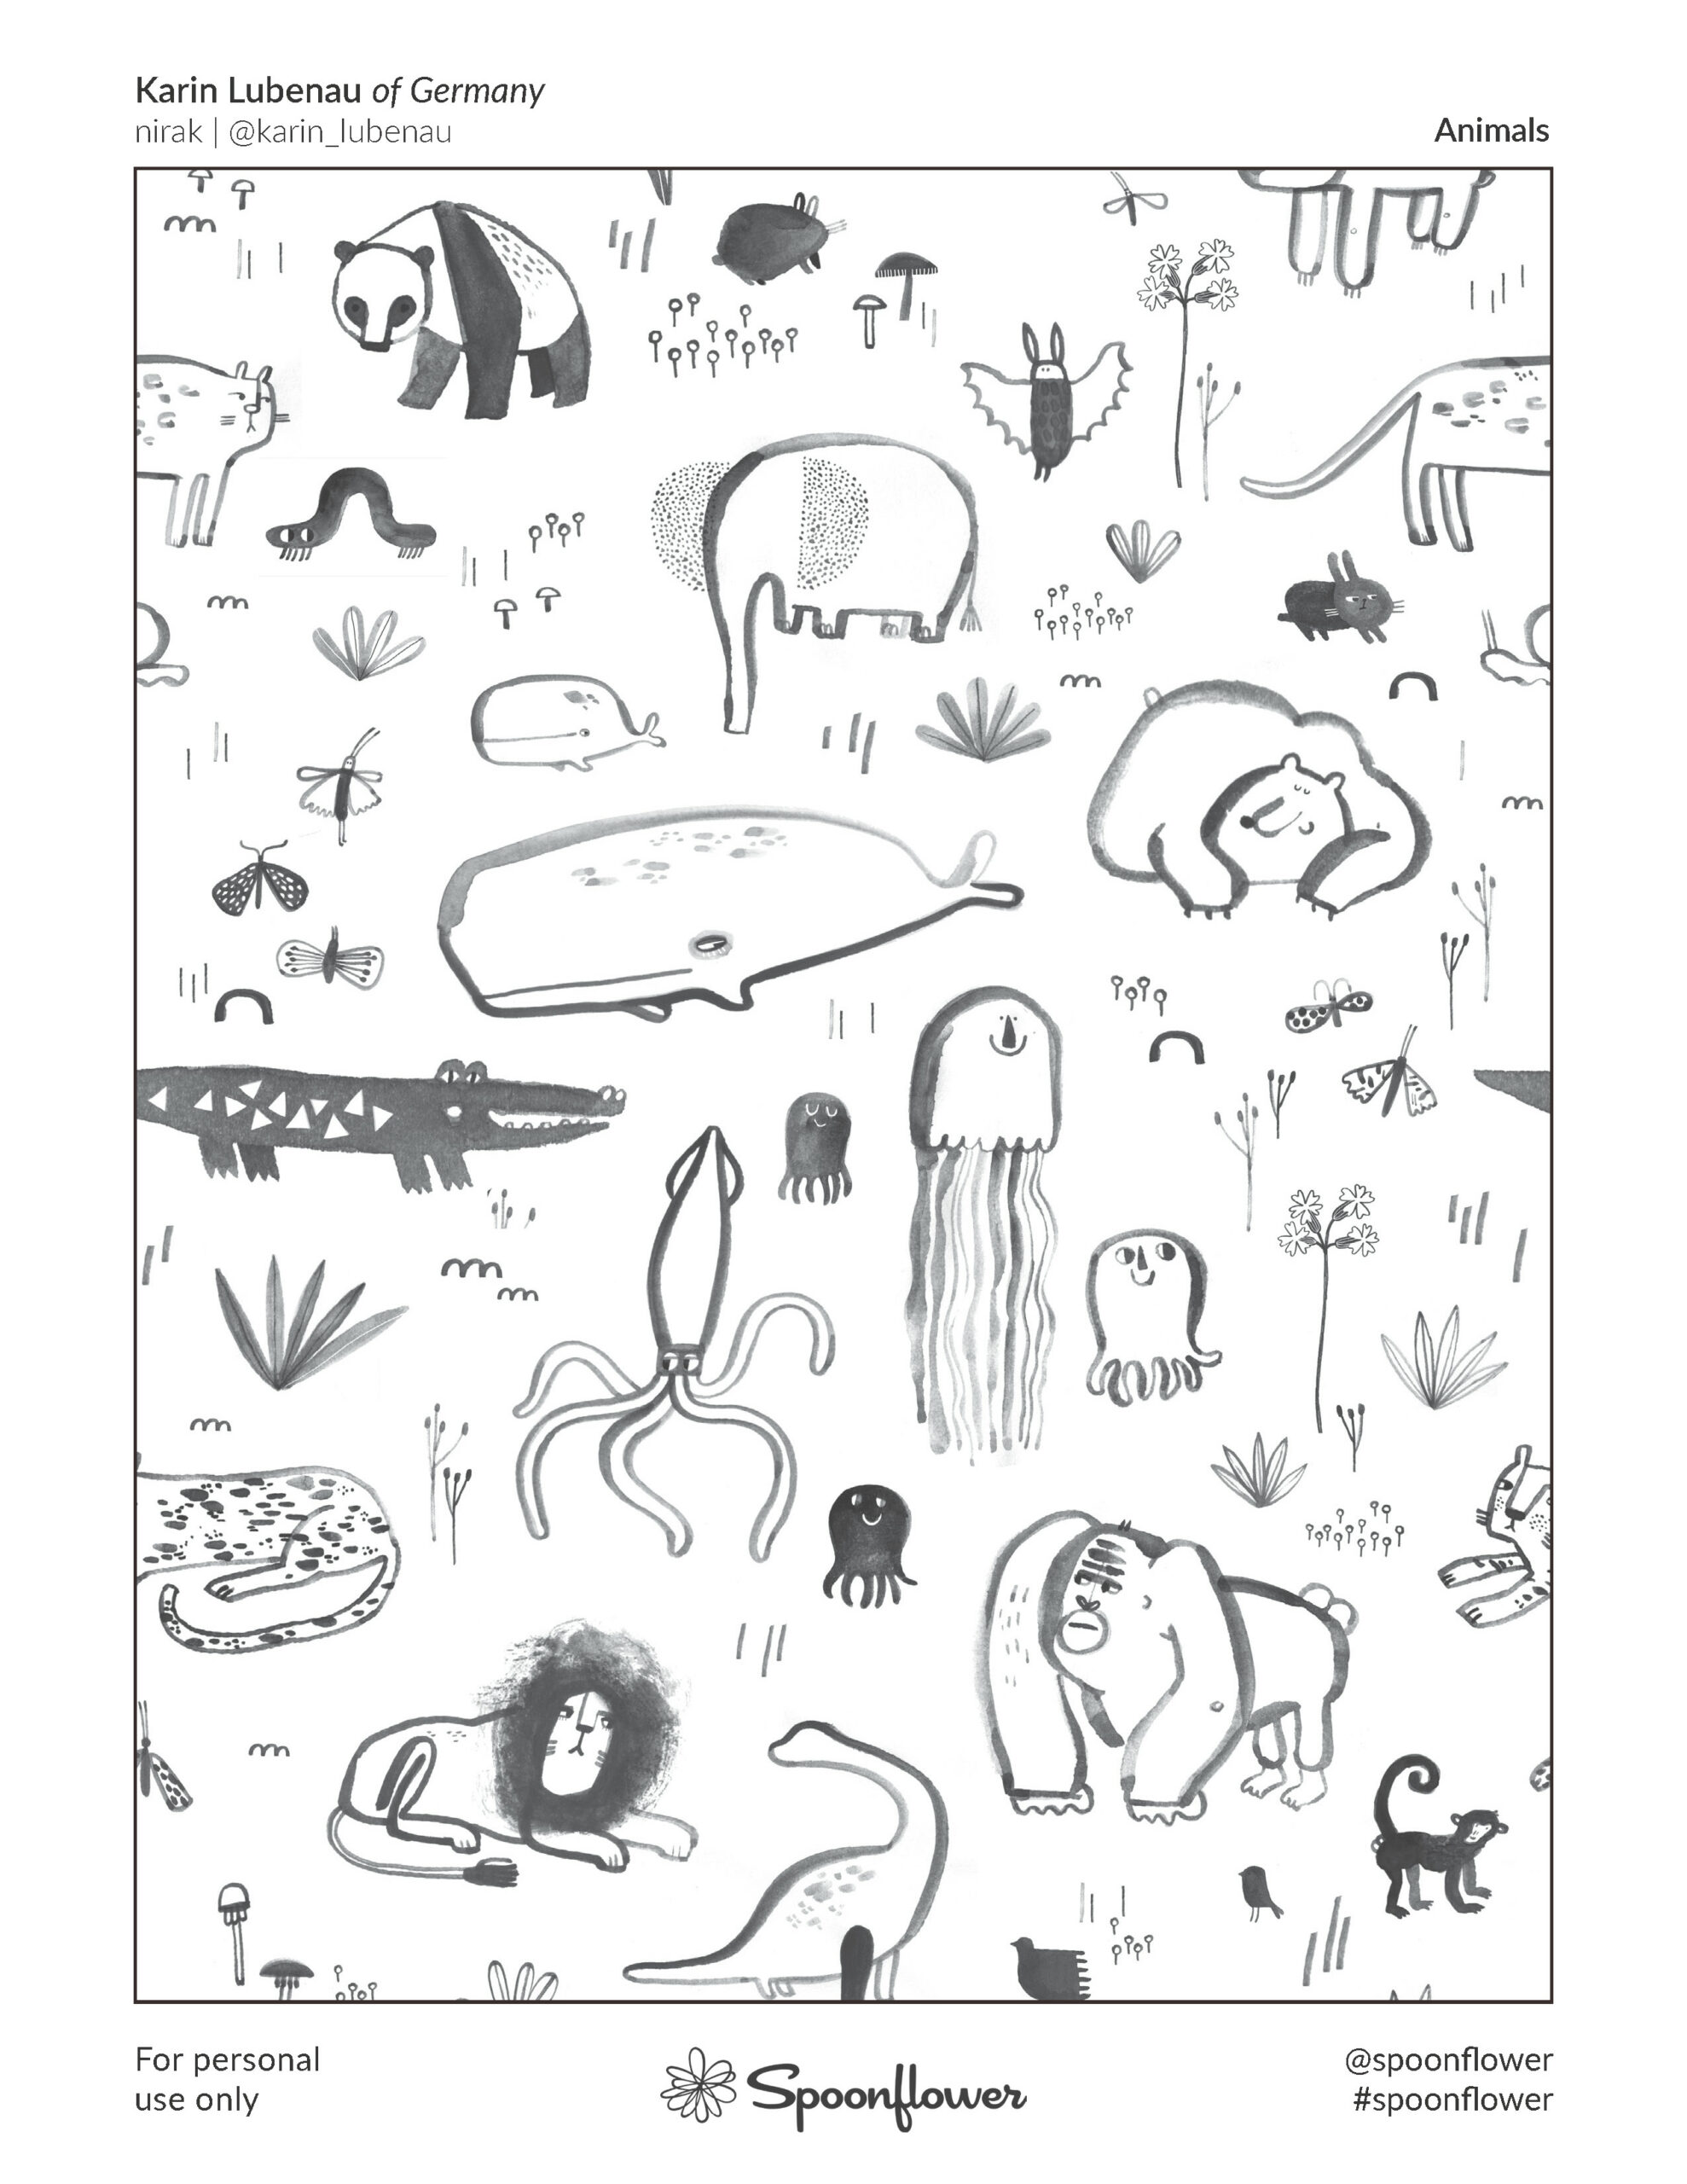 Coloring Book Page - Animals by Karin Lubenau